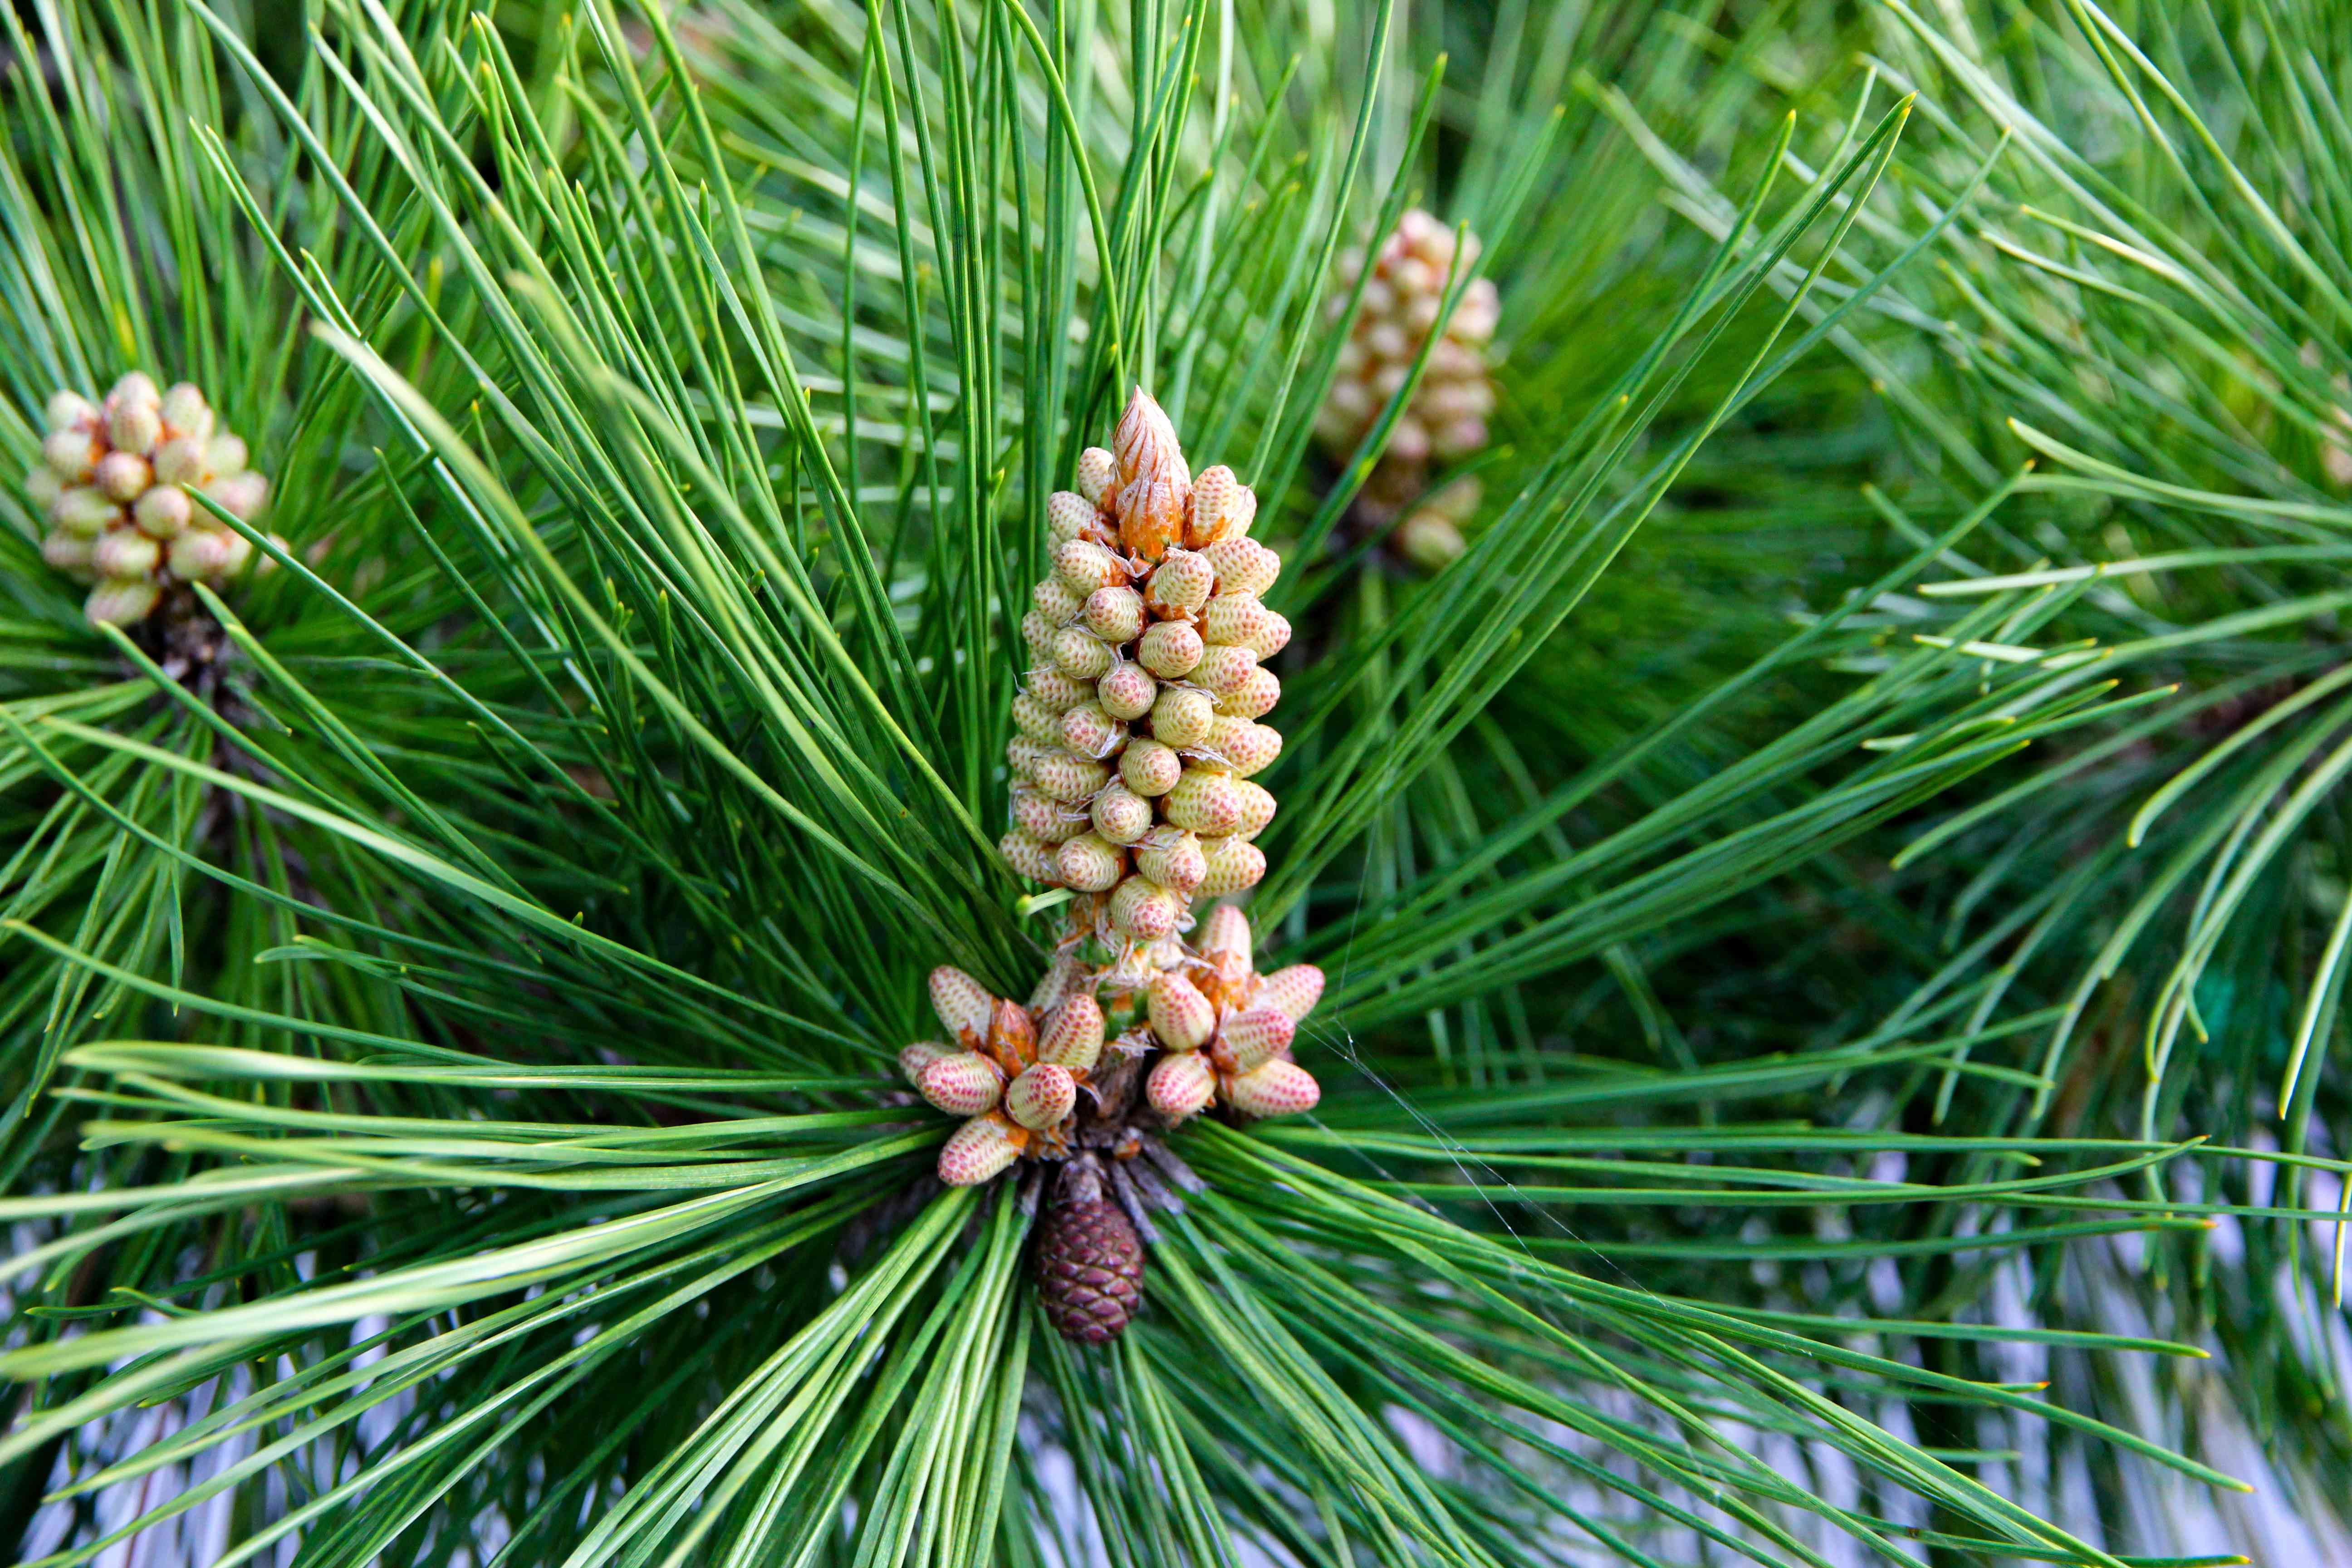 closeup shot of pine cone nestled among green pine leaves